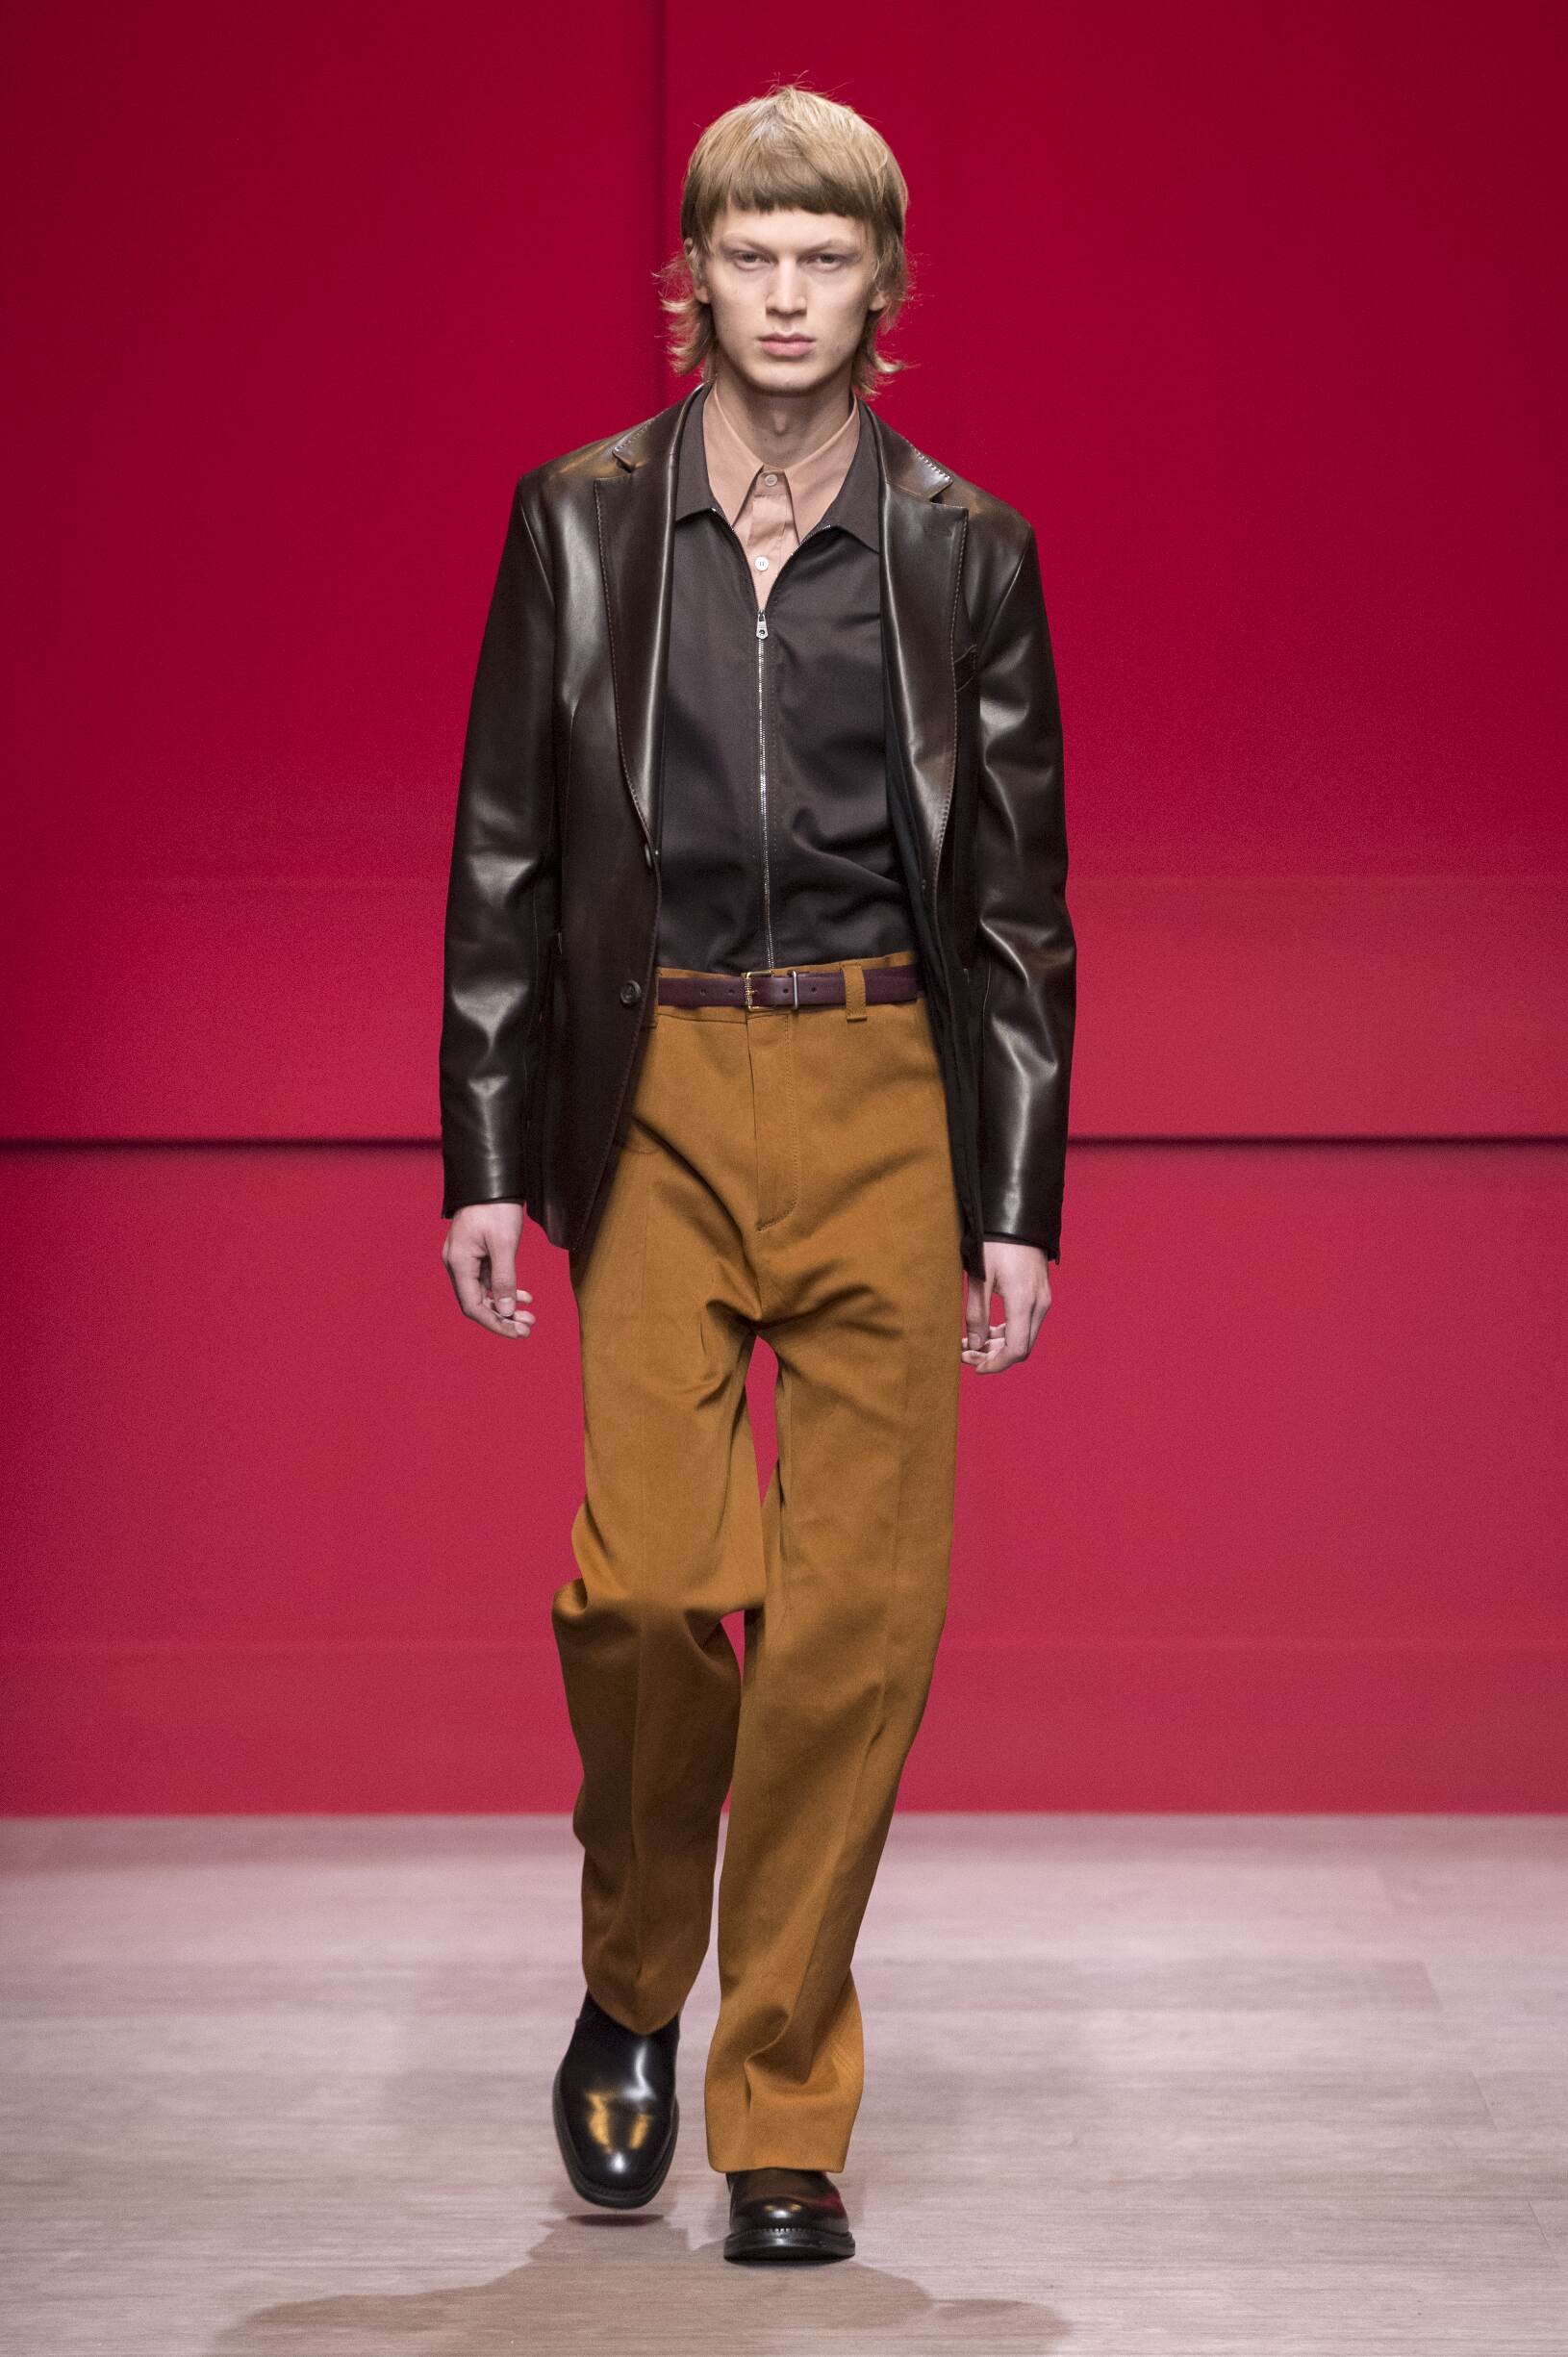 Fall Fashion Man Trends 2018 Salvatore Ferragamo